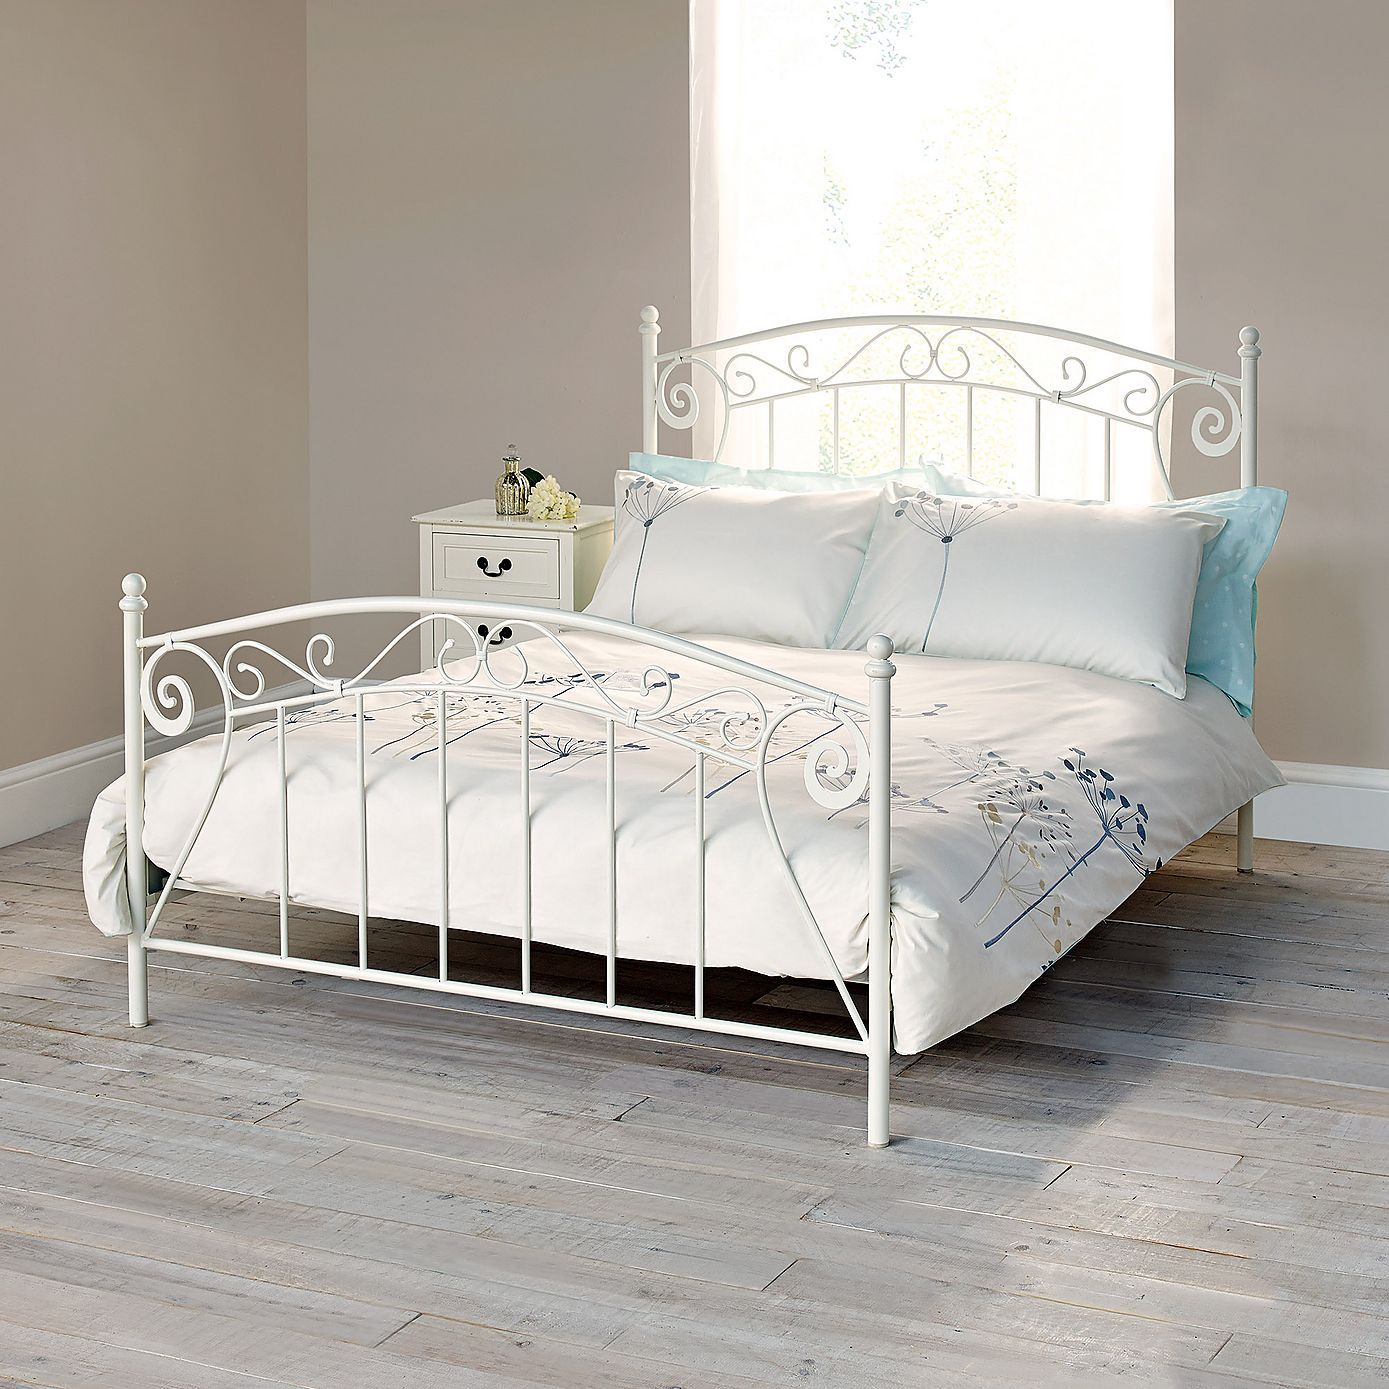 Tiffany Double Bedstead - Dunelm Oak Bed Framewooden